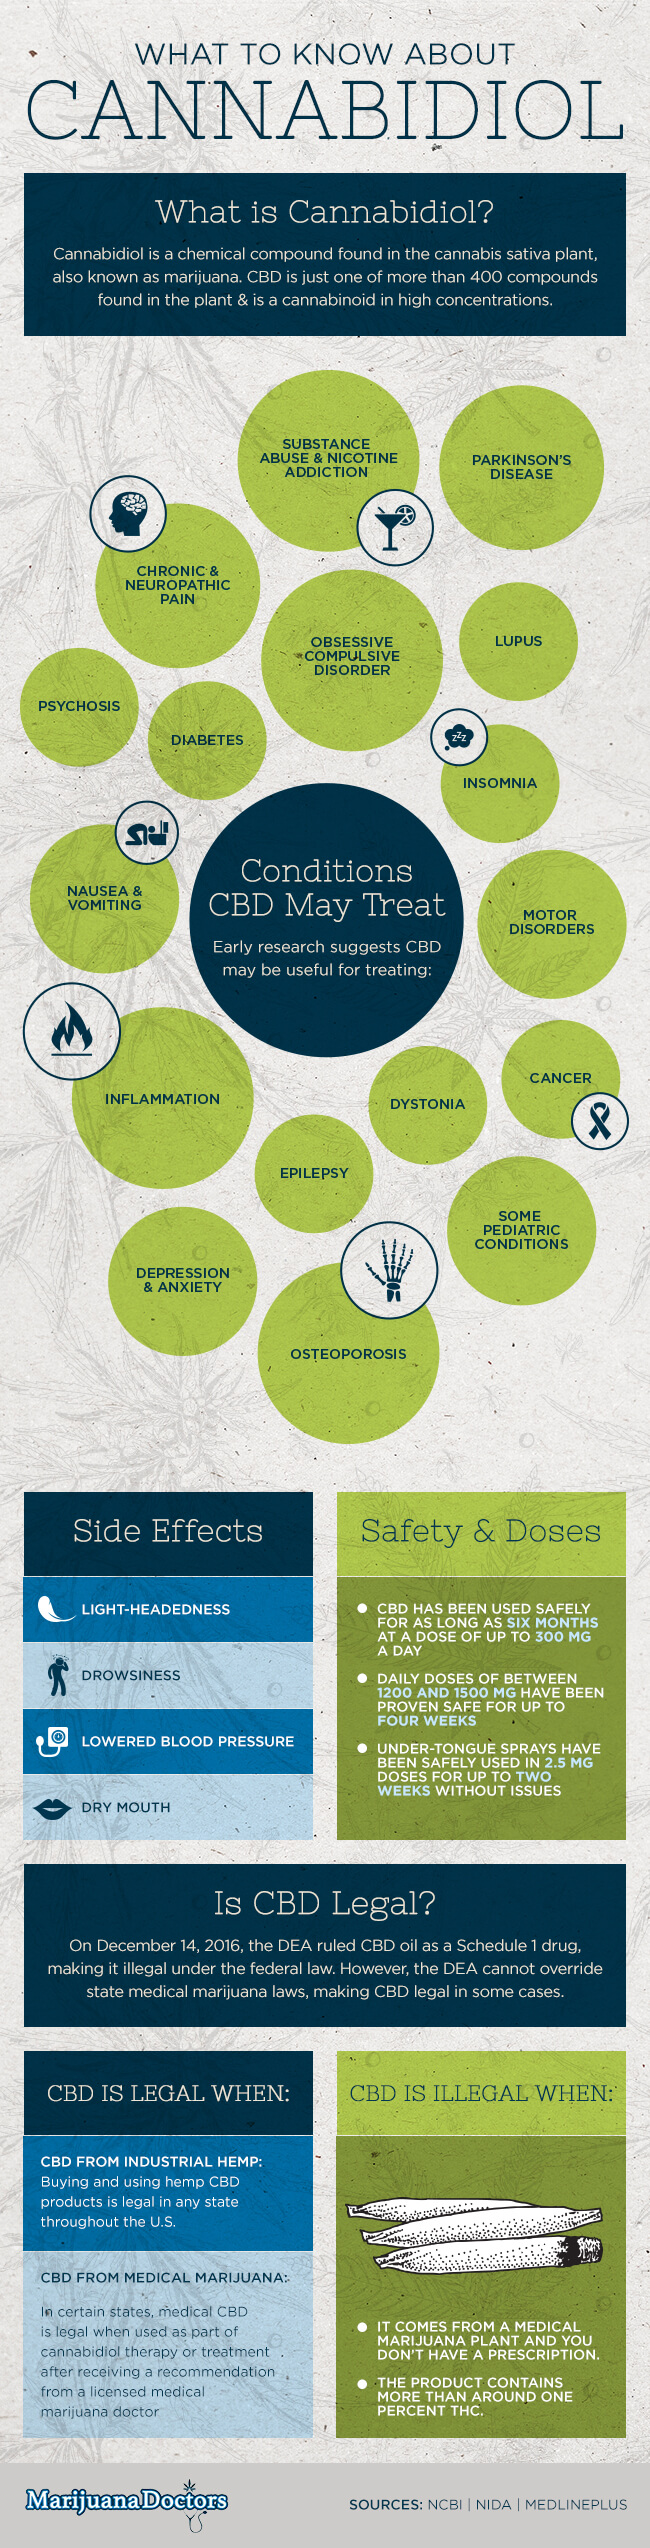 What to know about cannabidiol